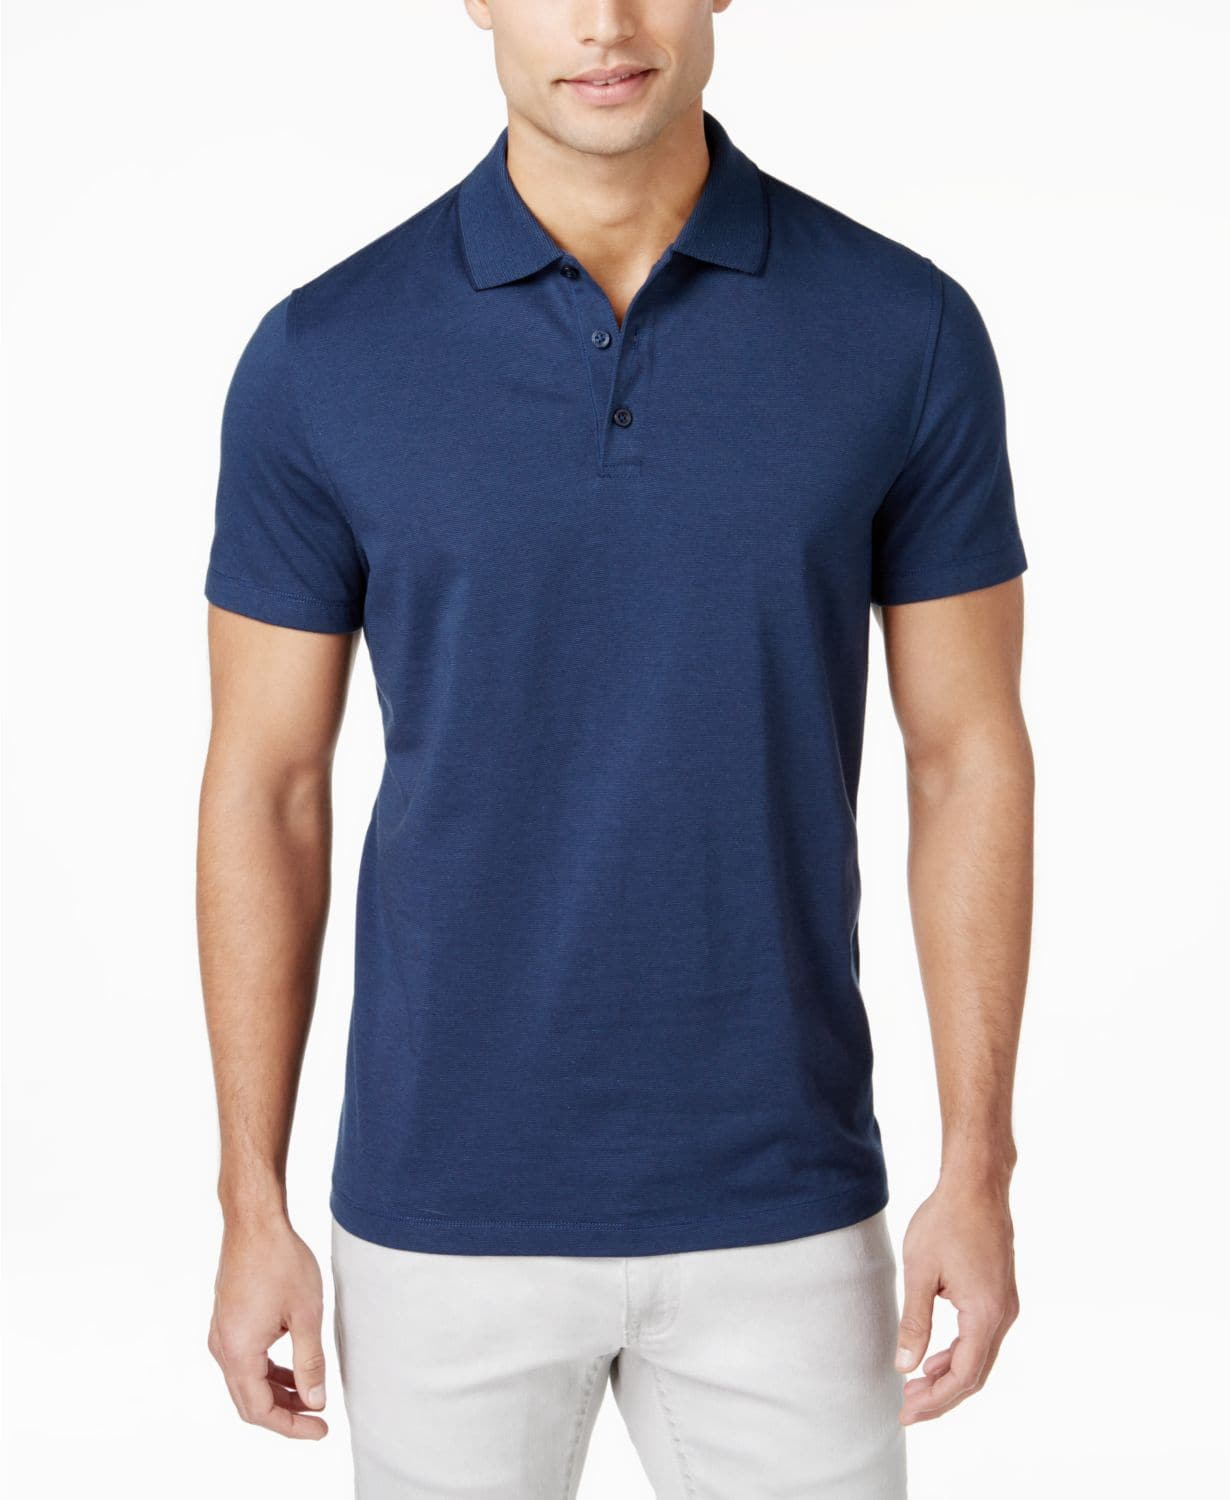 Alfani Men's and Women's Apparel Up to 80% Off: Polo Shirt $8, Dress Shirt $9 & More + Free Store Pickup at Macy's